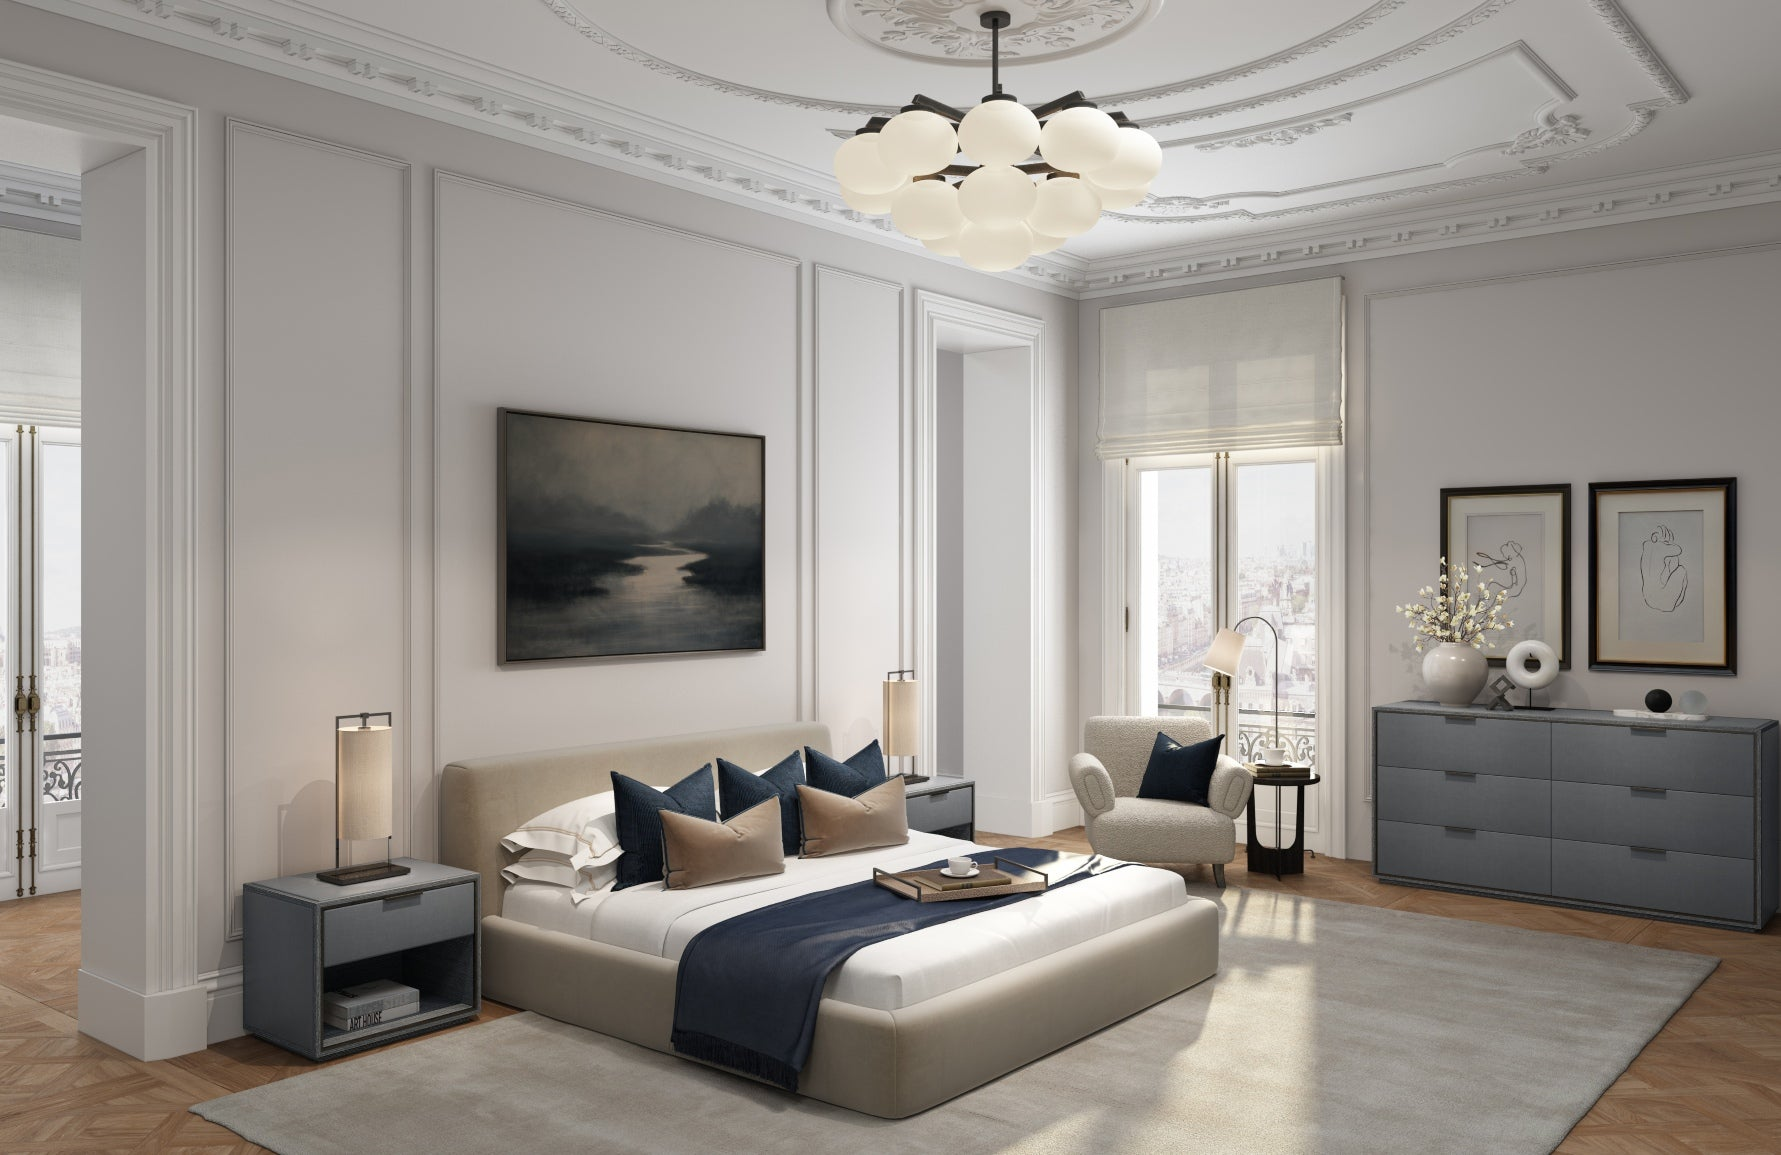 The Paris Lookbook | Modern Paris Bedroom | Shop now at LuxDeco.com